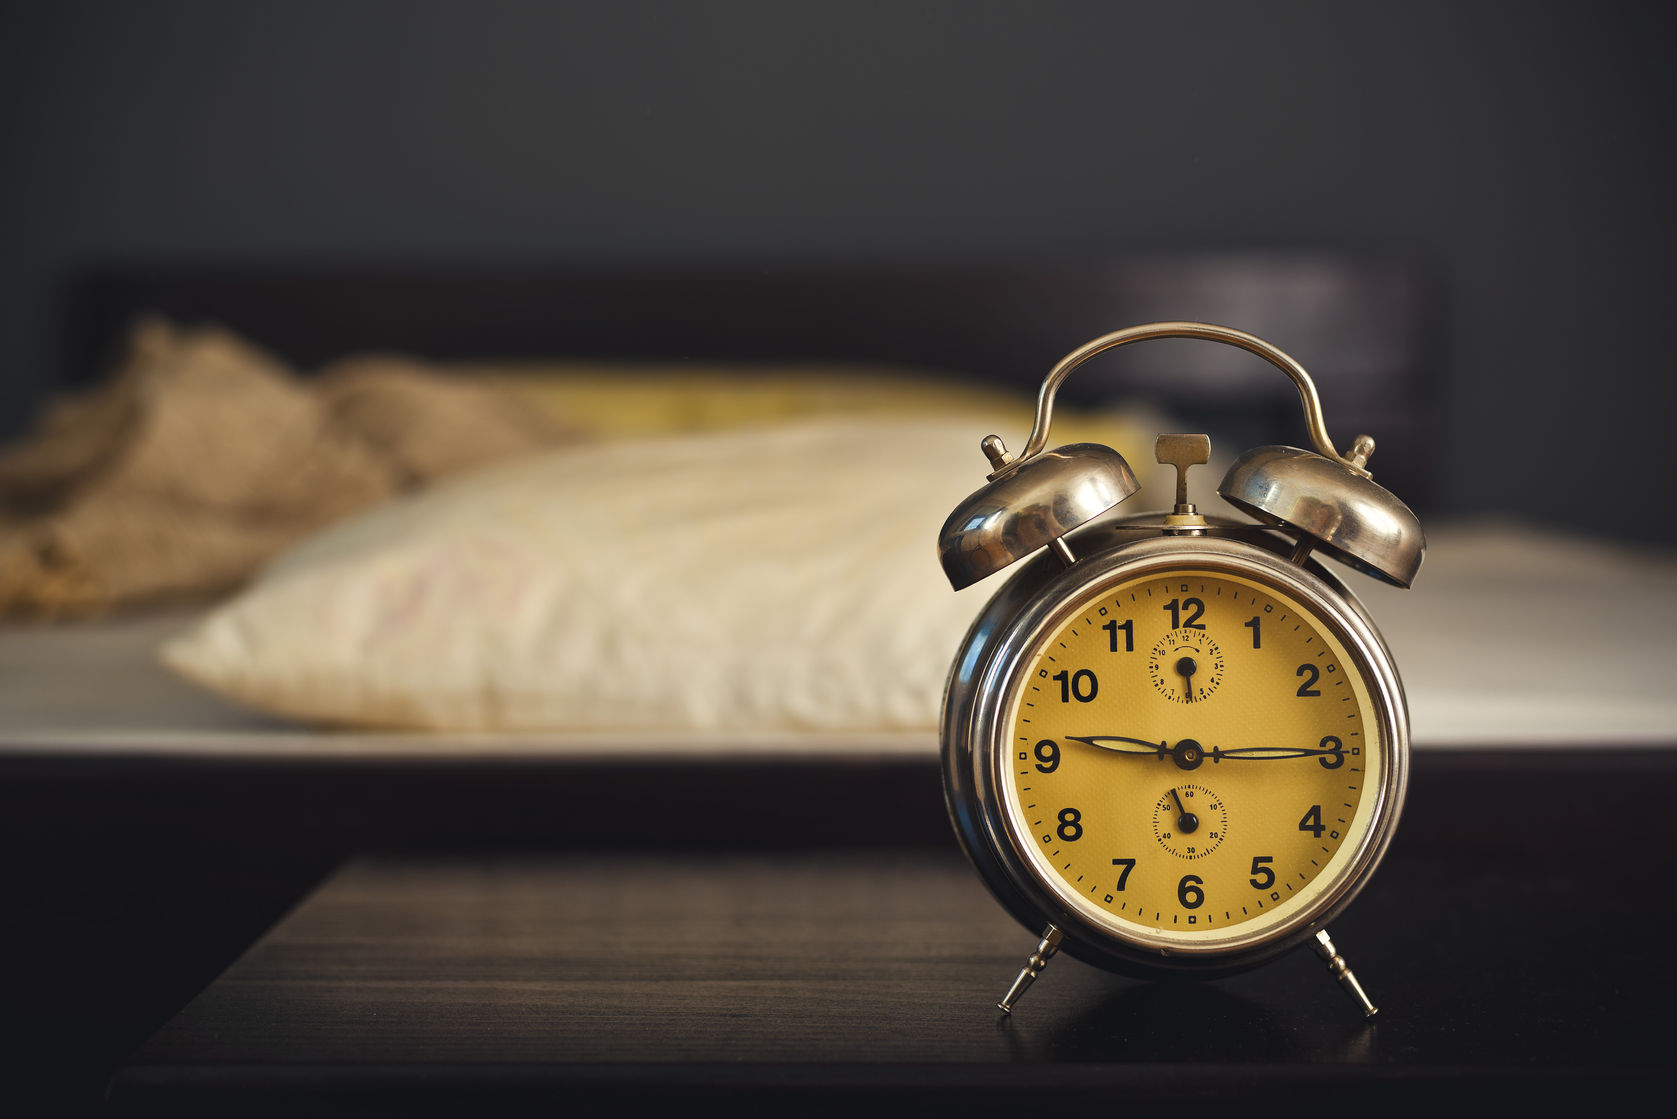 25824695 - vintage alarm clock in bedroom on a night table by the bed